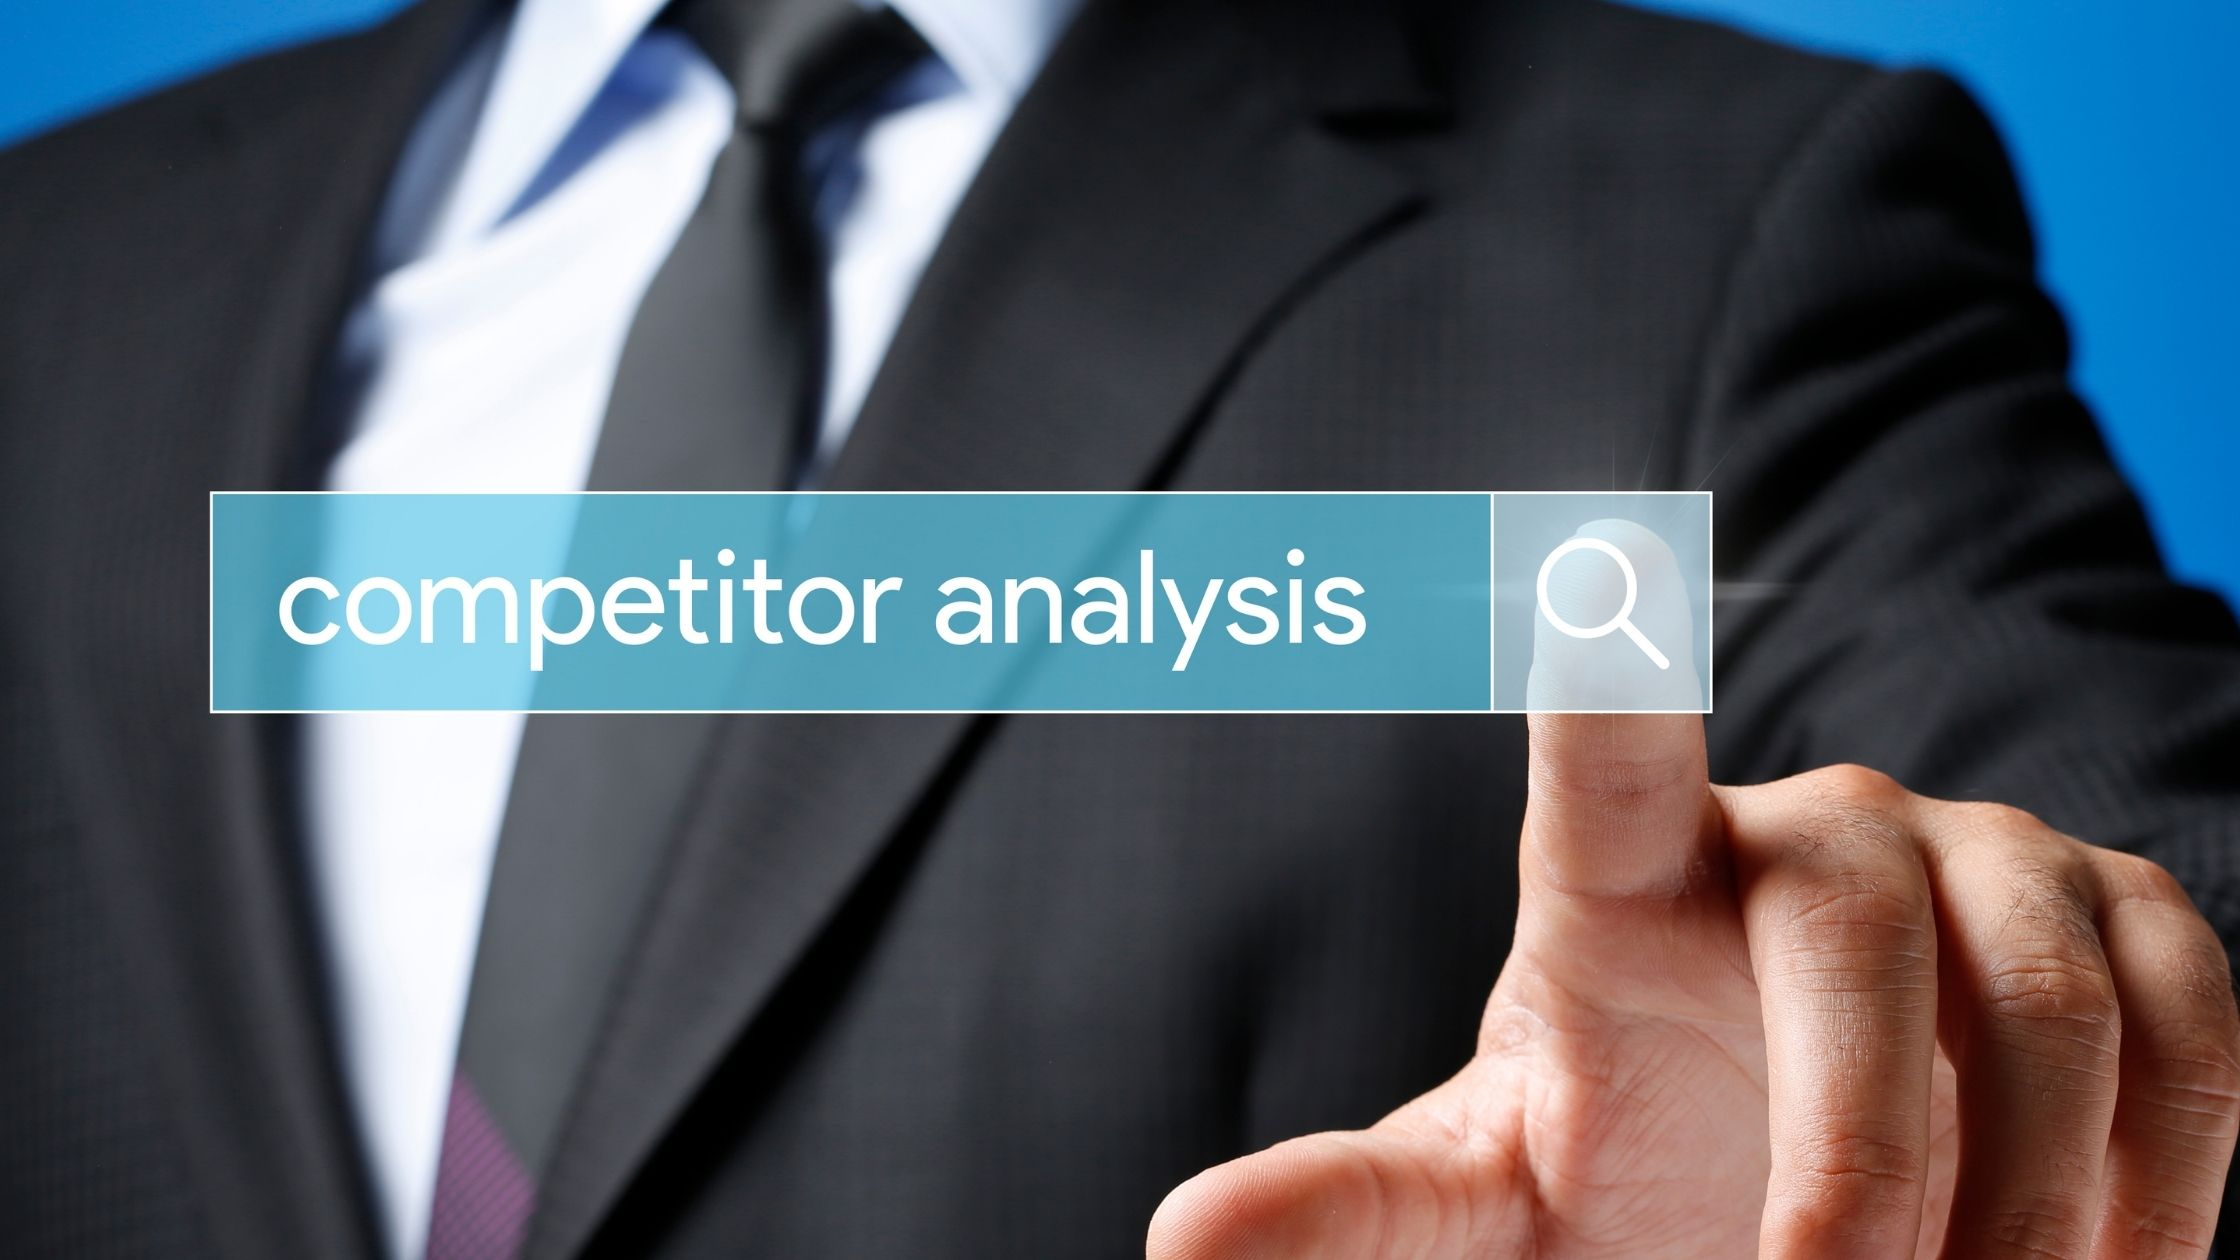 Competitive_analysis_featured